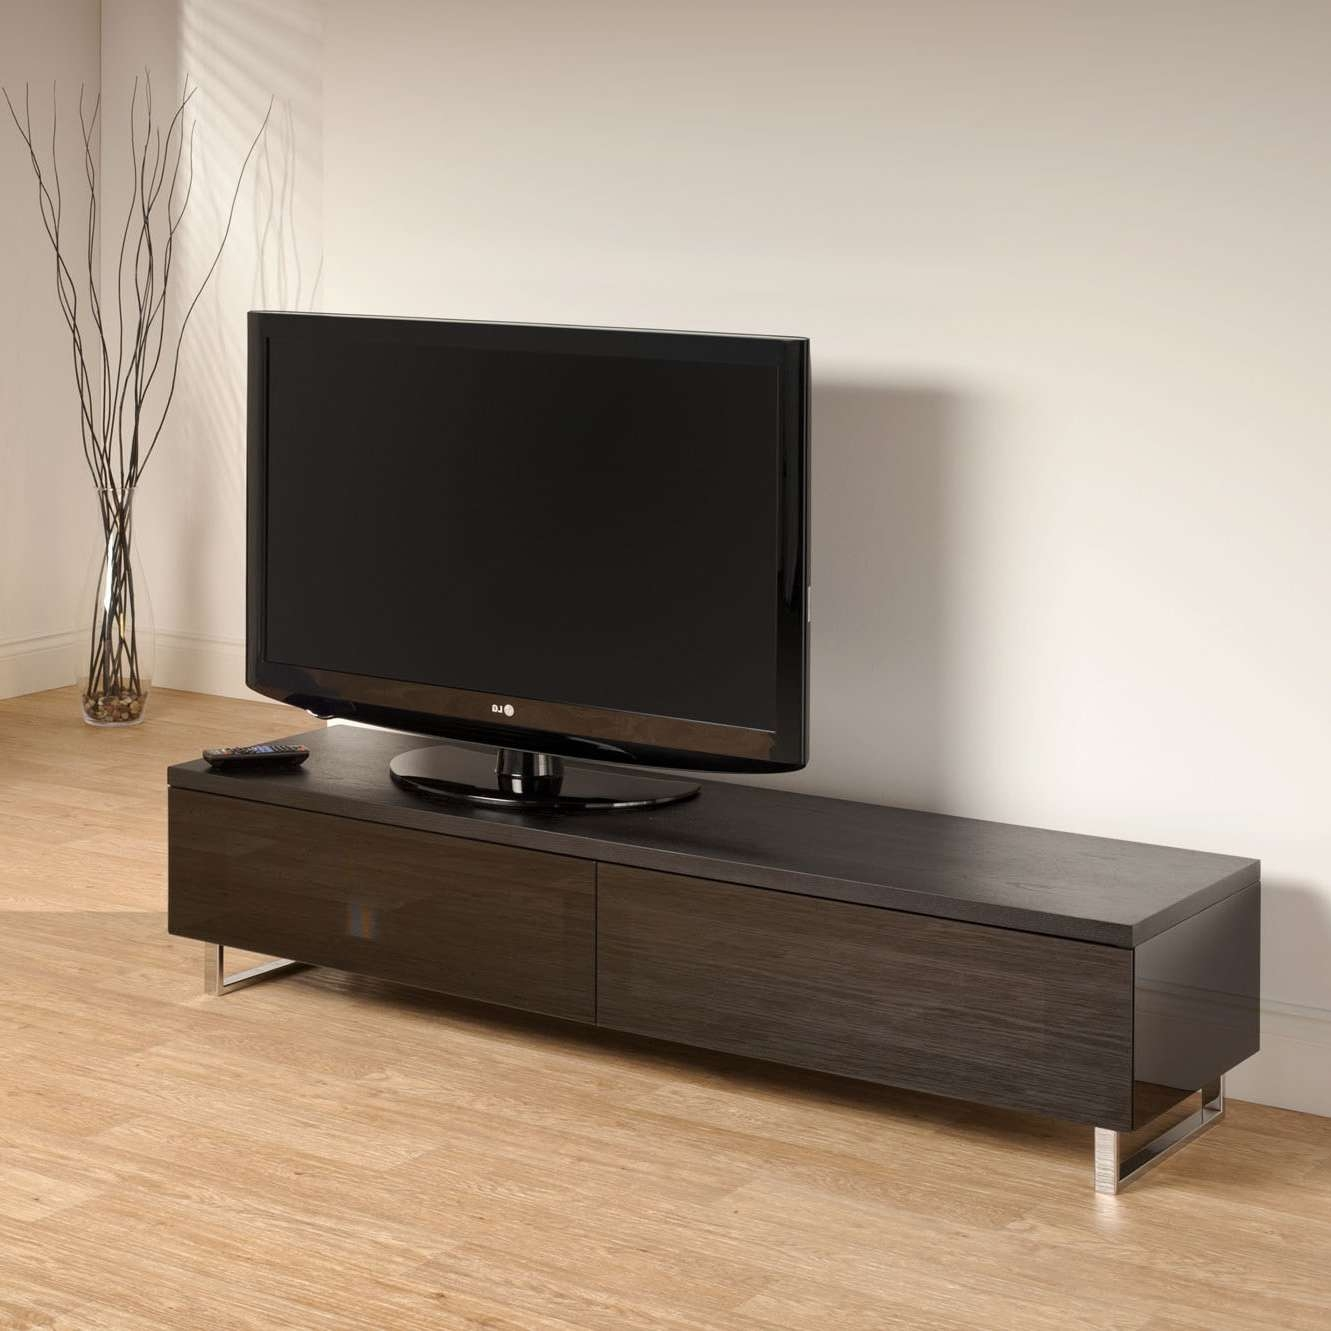 Good Modern Low Profile Tv Stand 24 With Additional Interior For Modern Low Profile Tv Stands (View 7 of 15)